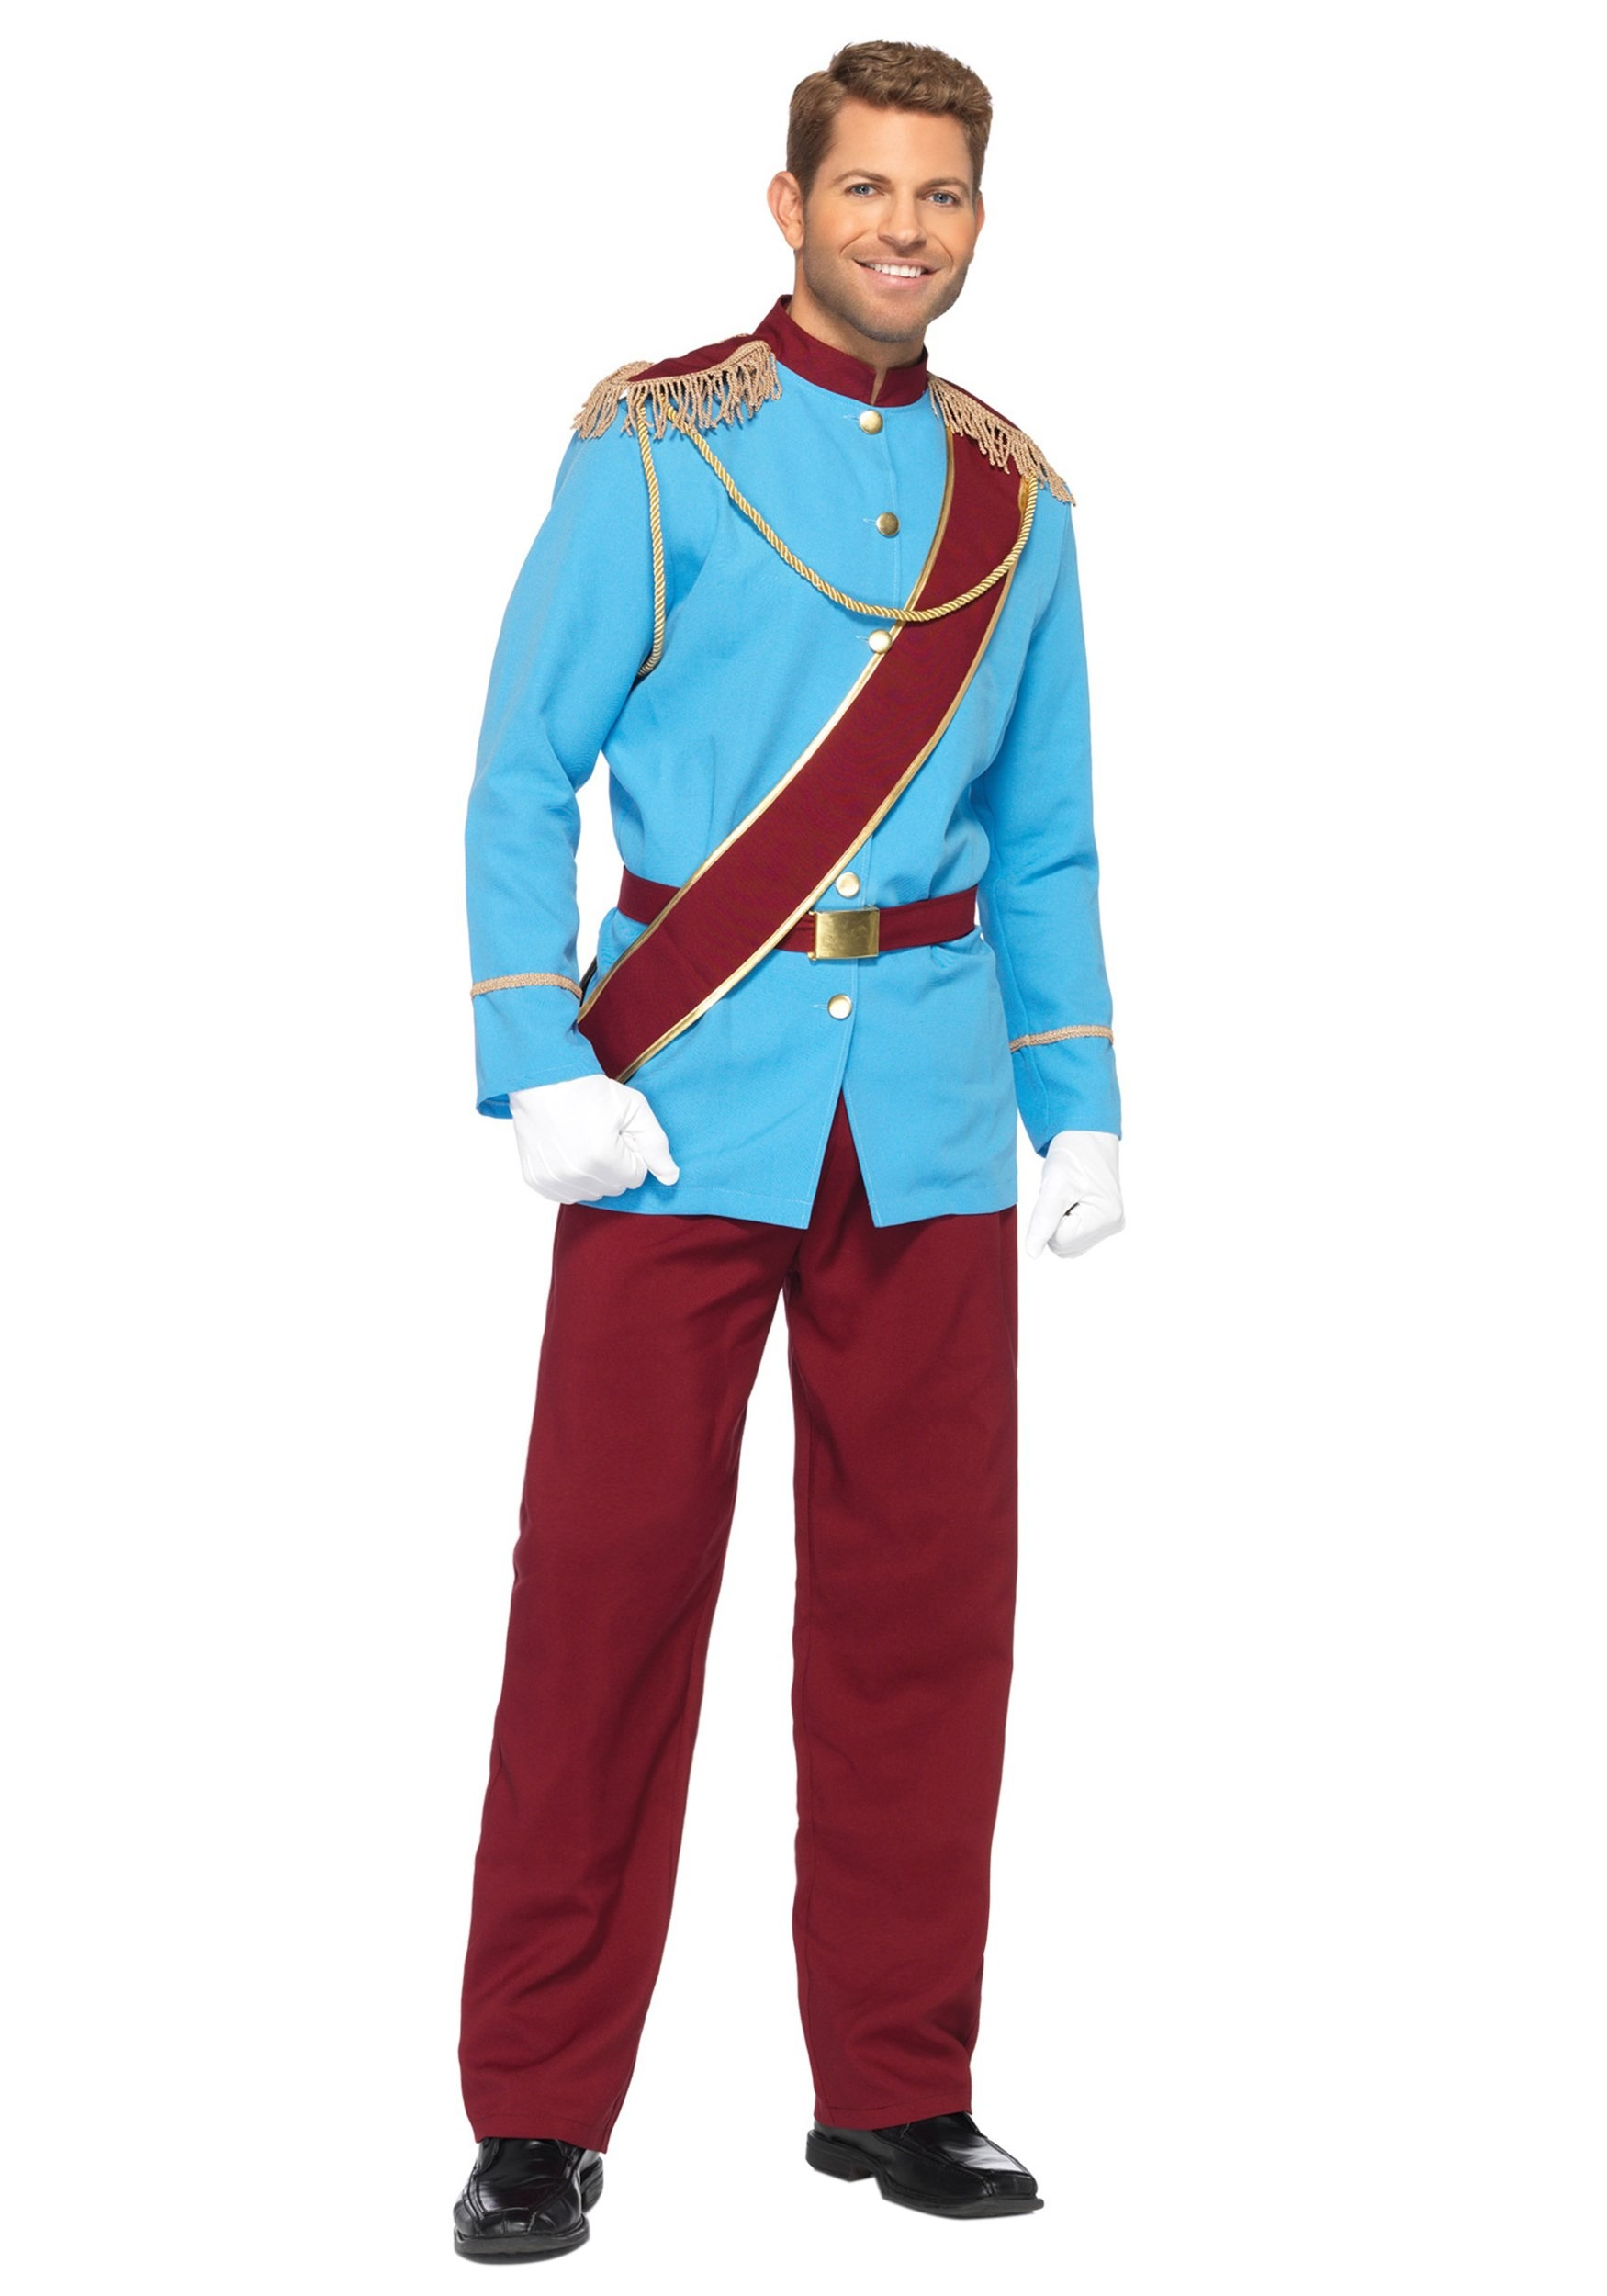 Men's Disney Prince Charming Costume